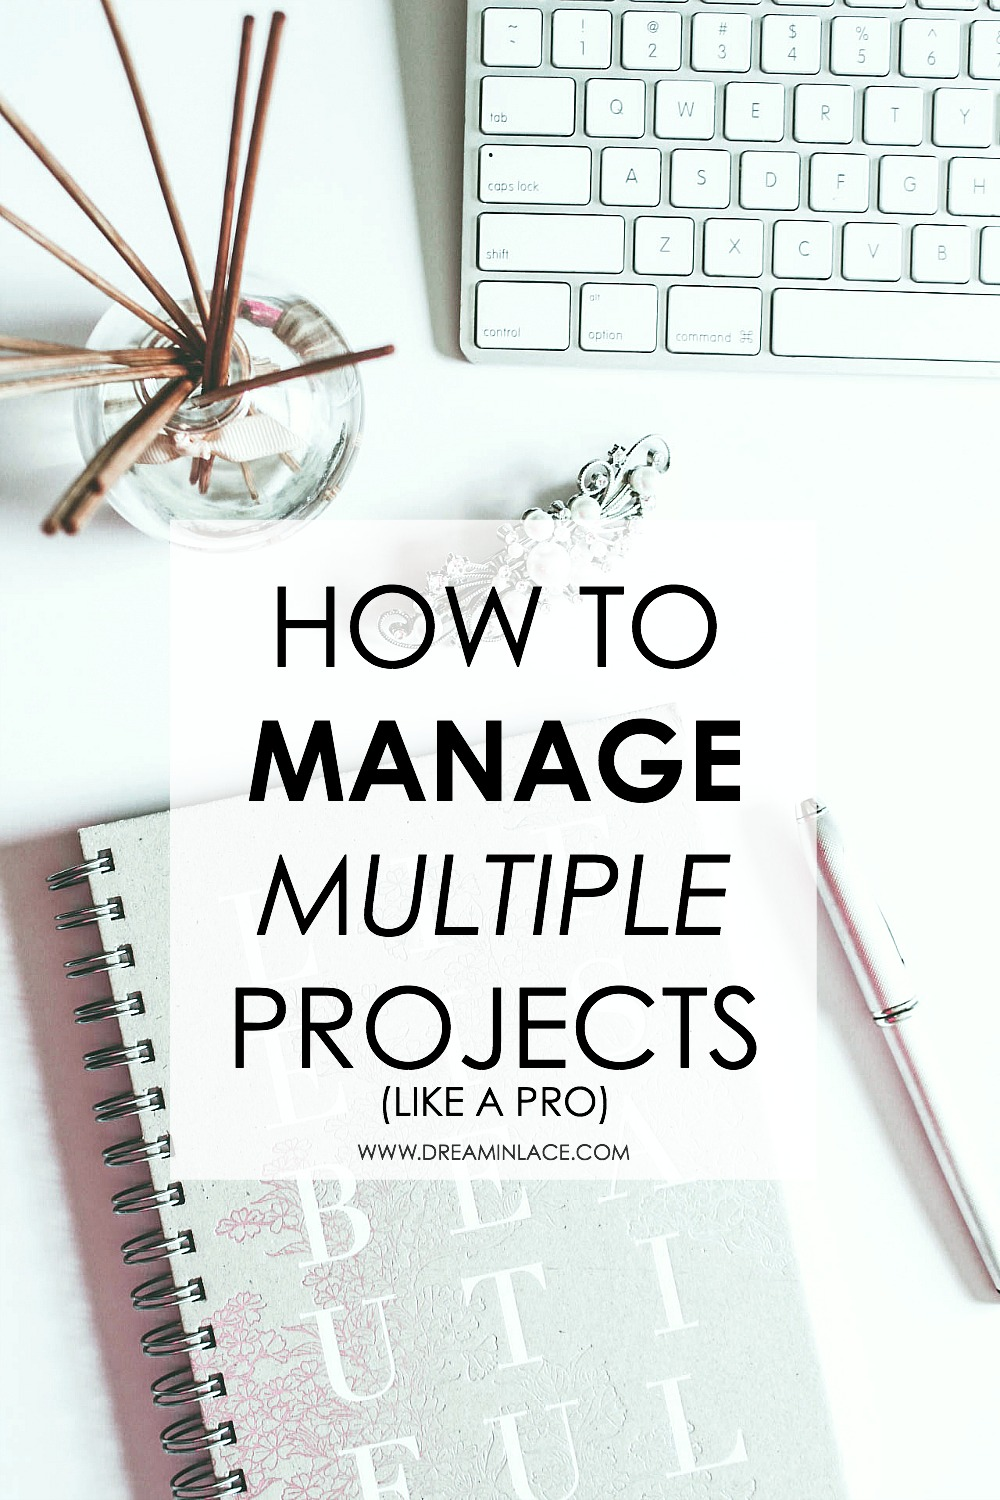 How to Manage Multiple Projects Like a Pro #WorkTips #TimeManagement